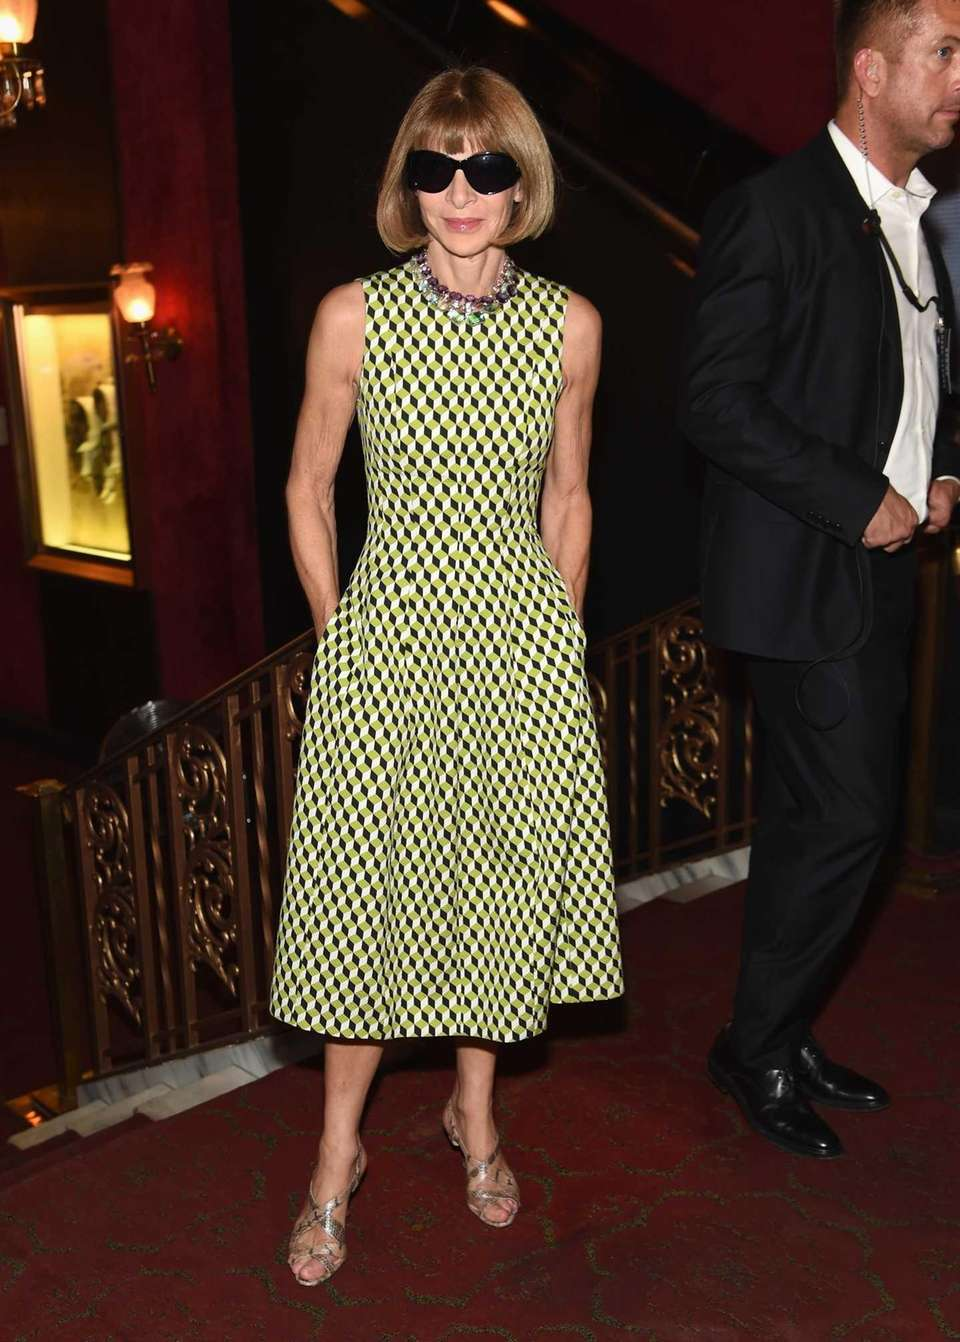 Anna Wintour attends the Marc Jacobs Spring 2016